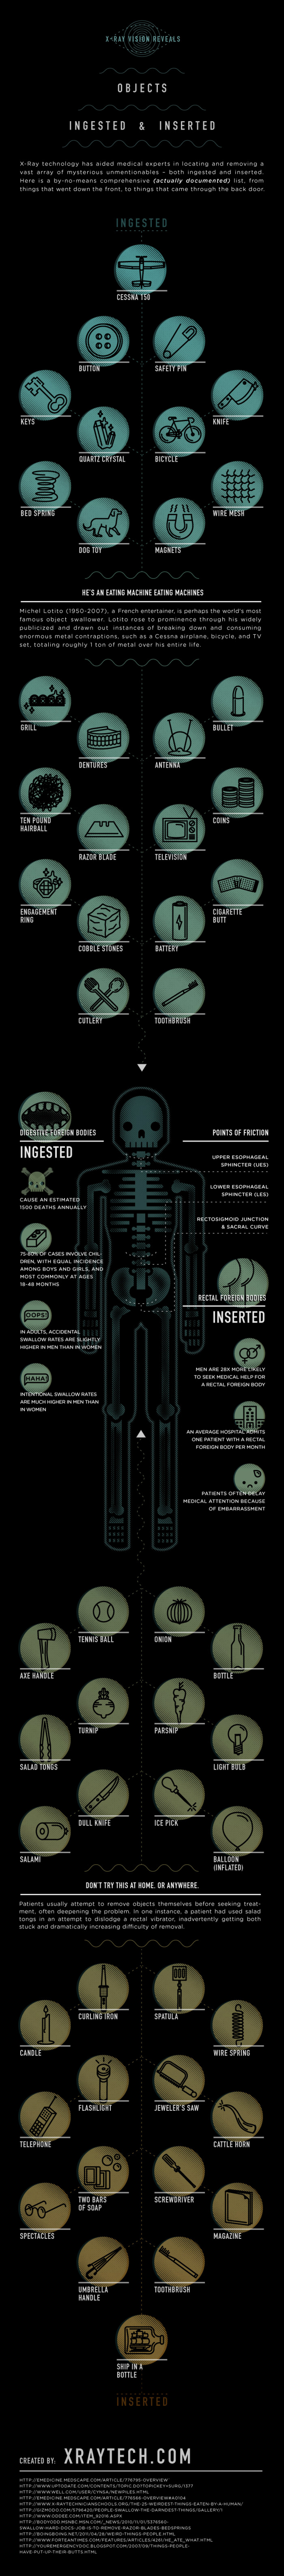 Bizarre Objects Extracted from Humans Infographic